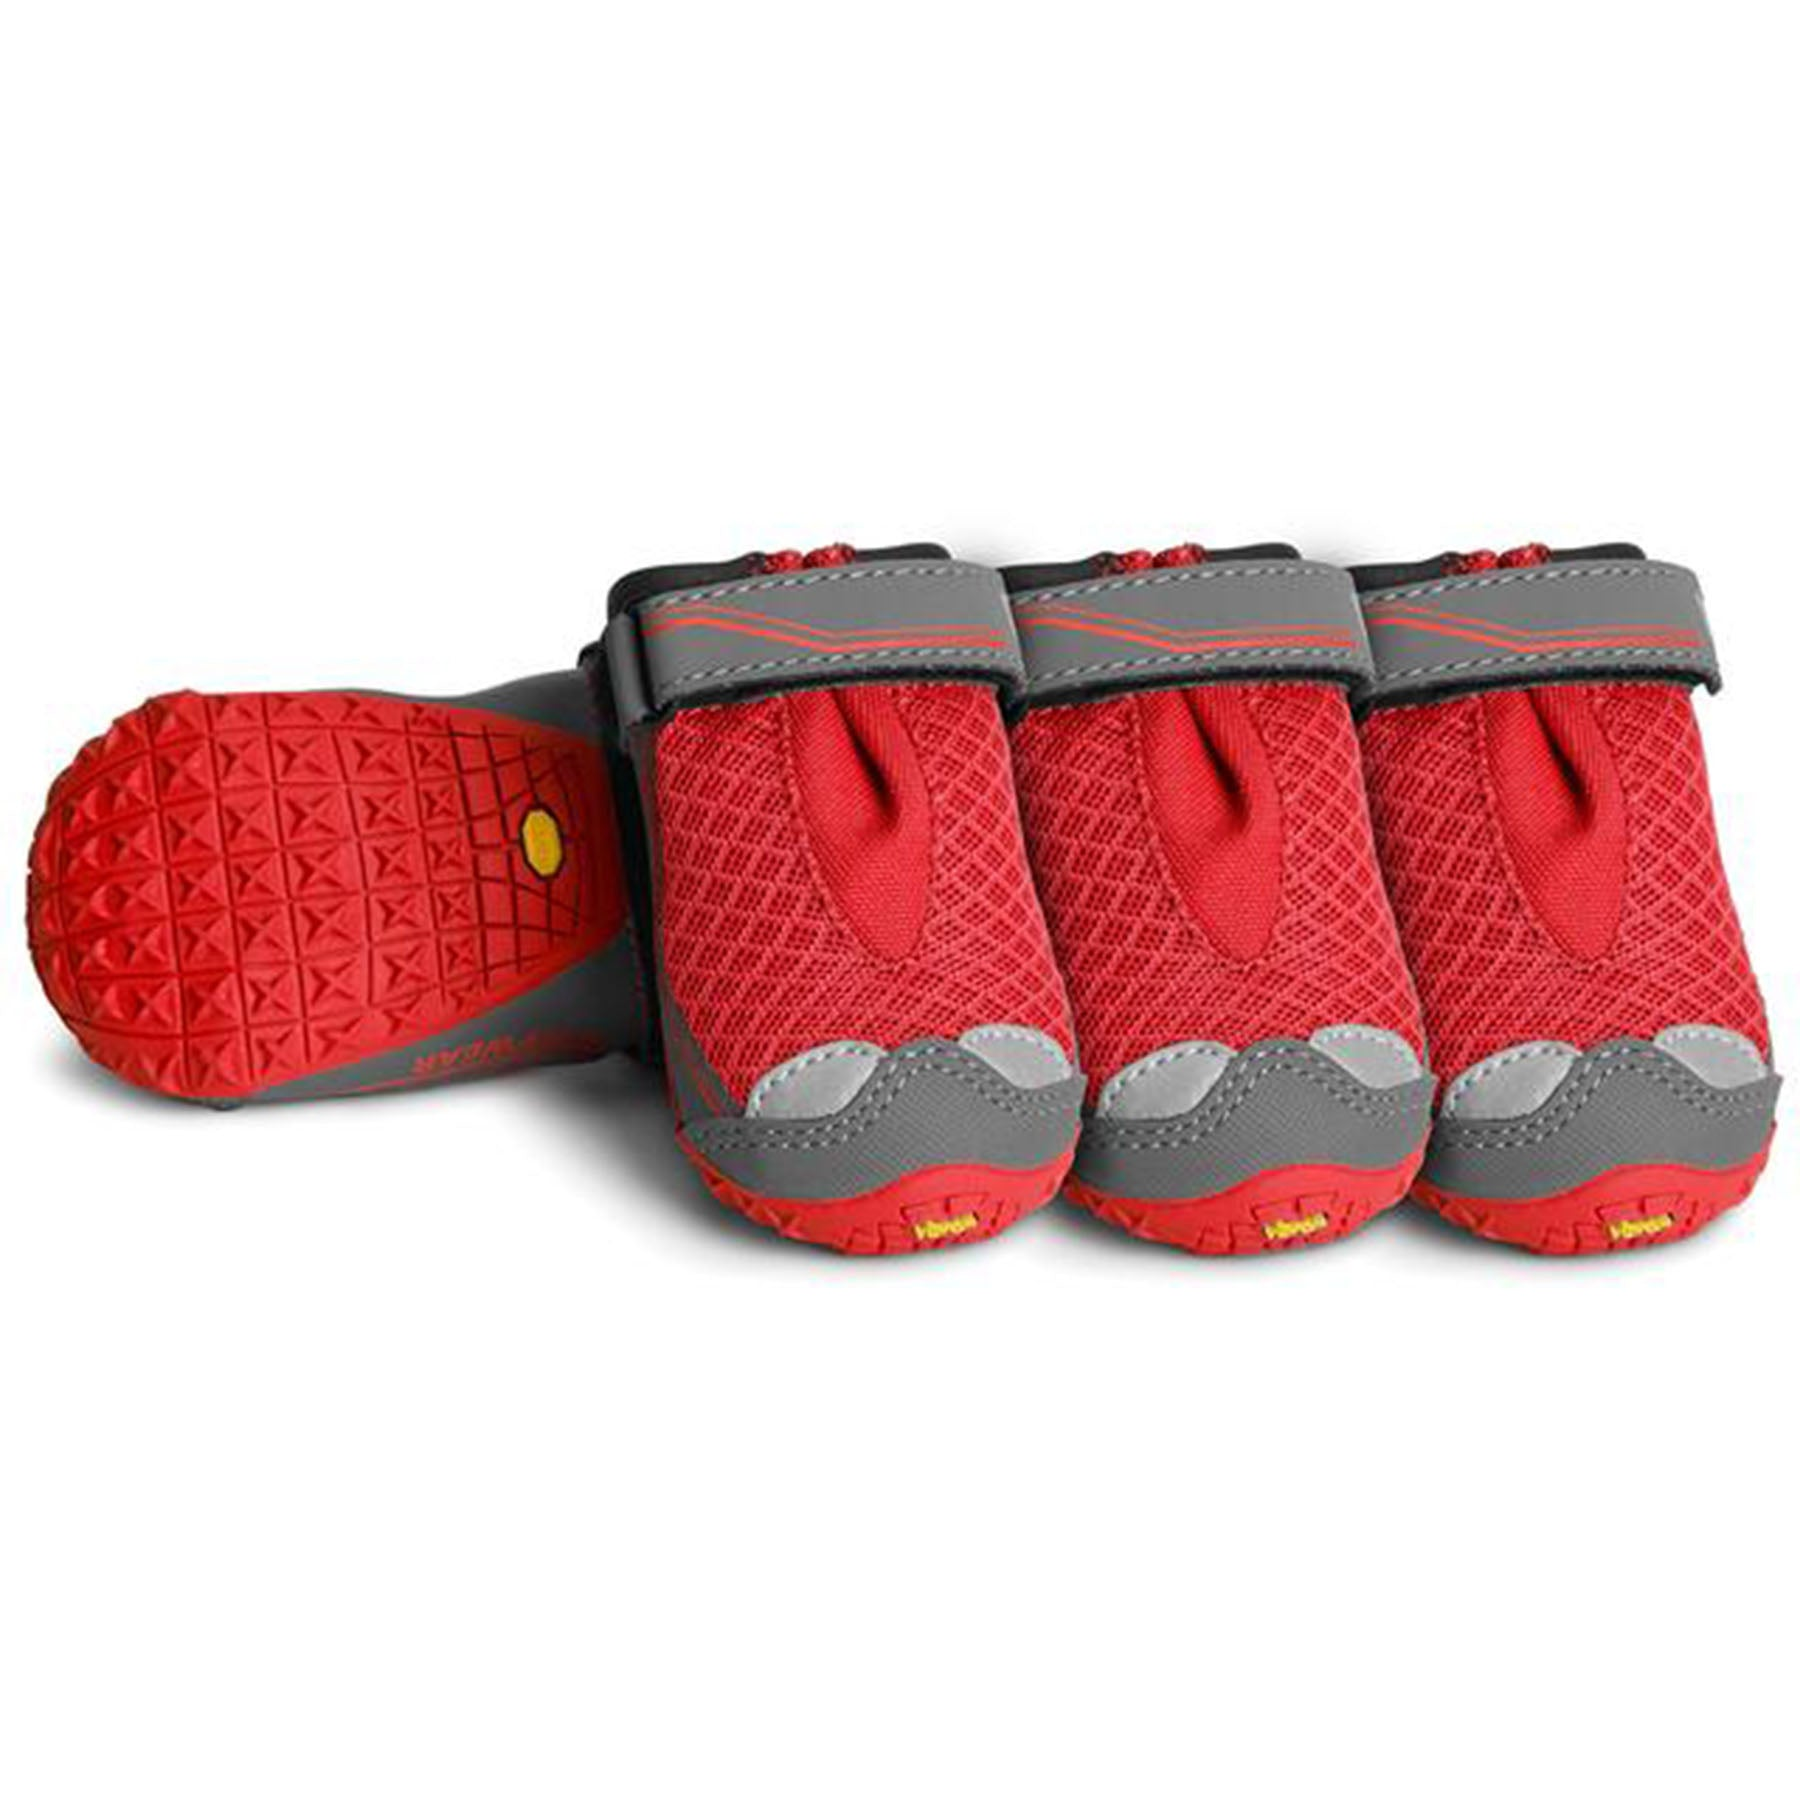 A photo of the Ruffwear Grip Trex Dog boots in red